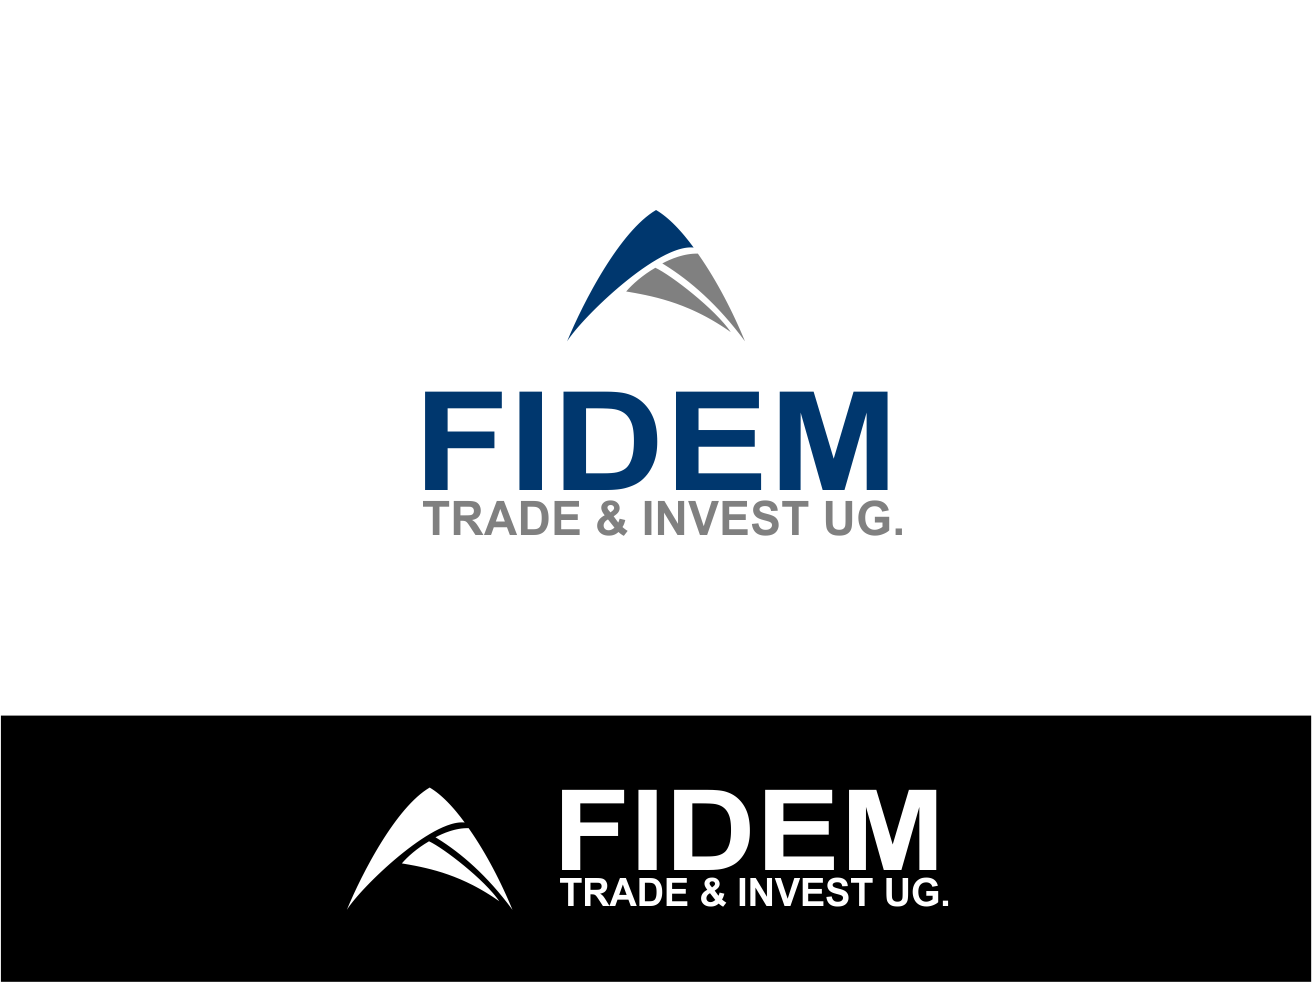 Logo Design by Agus Martoyo - Entry No. 674 in the Logo Design Contest Professional Logo Design for FIDEM Trade & Invest UG.